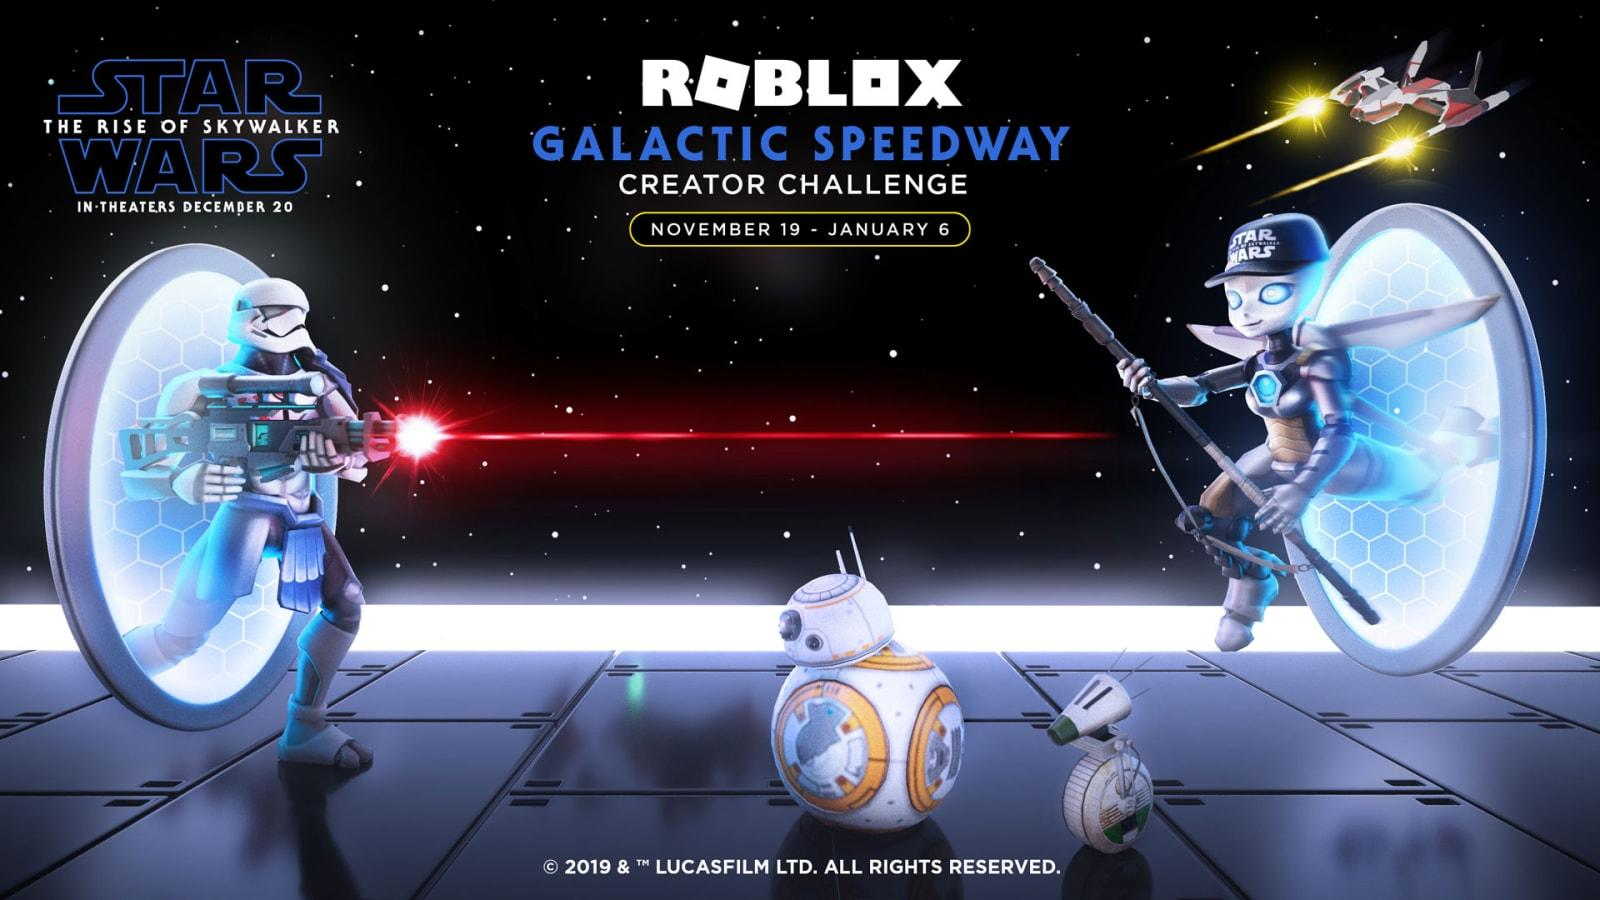 Roblox Wants You To Build Star Wars Speeder To Celebrate Rise